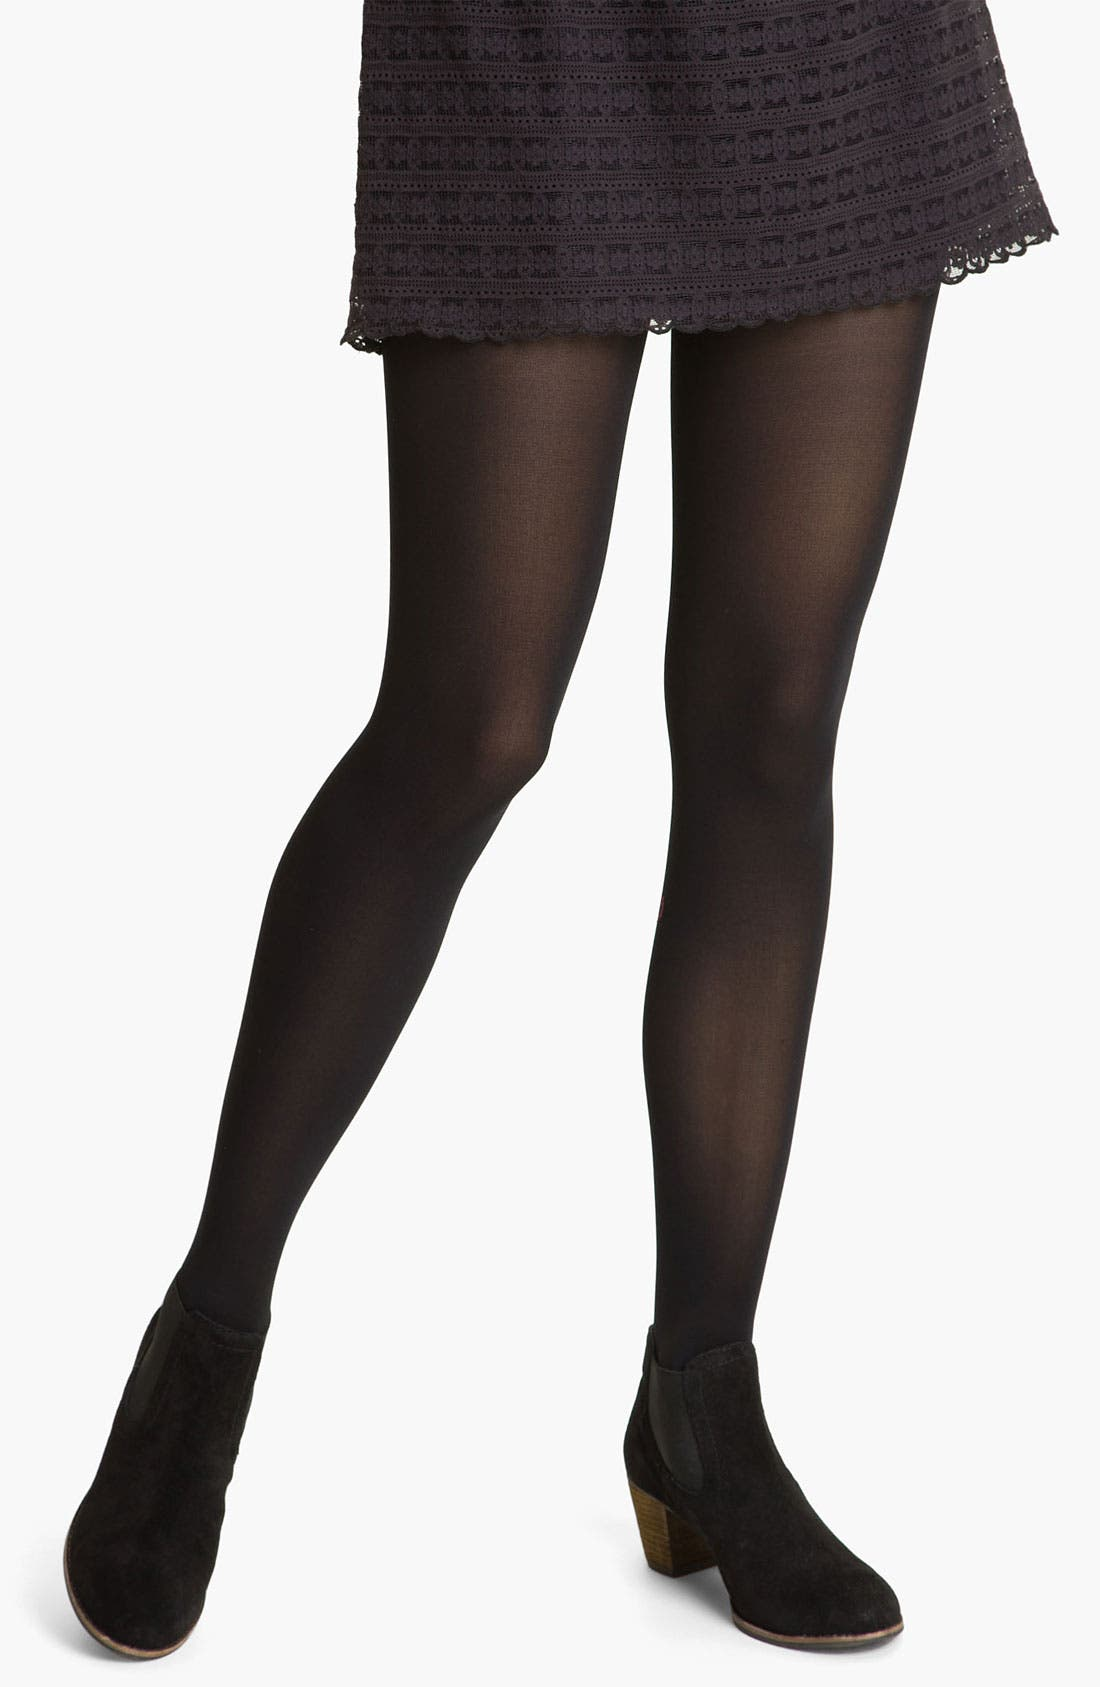 Alternate Image 1 Selected - Free People Opaque Tights